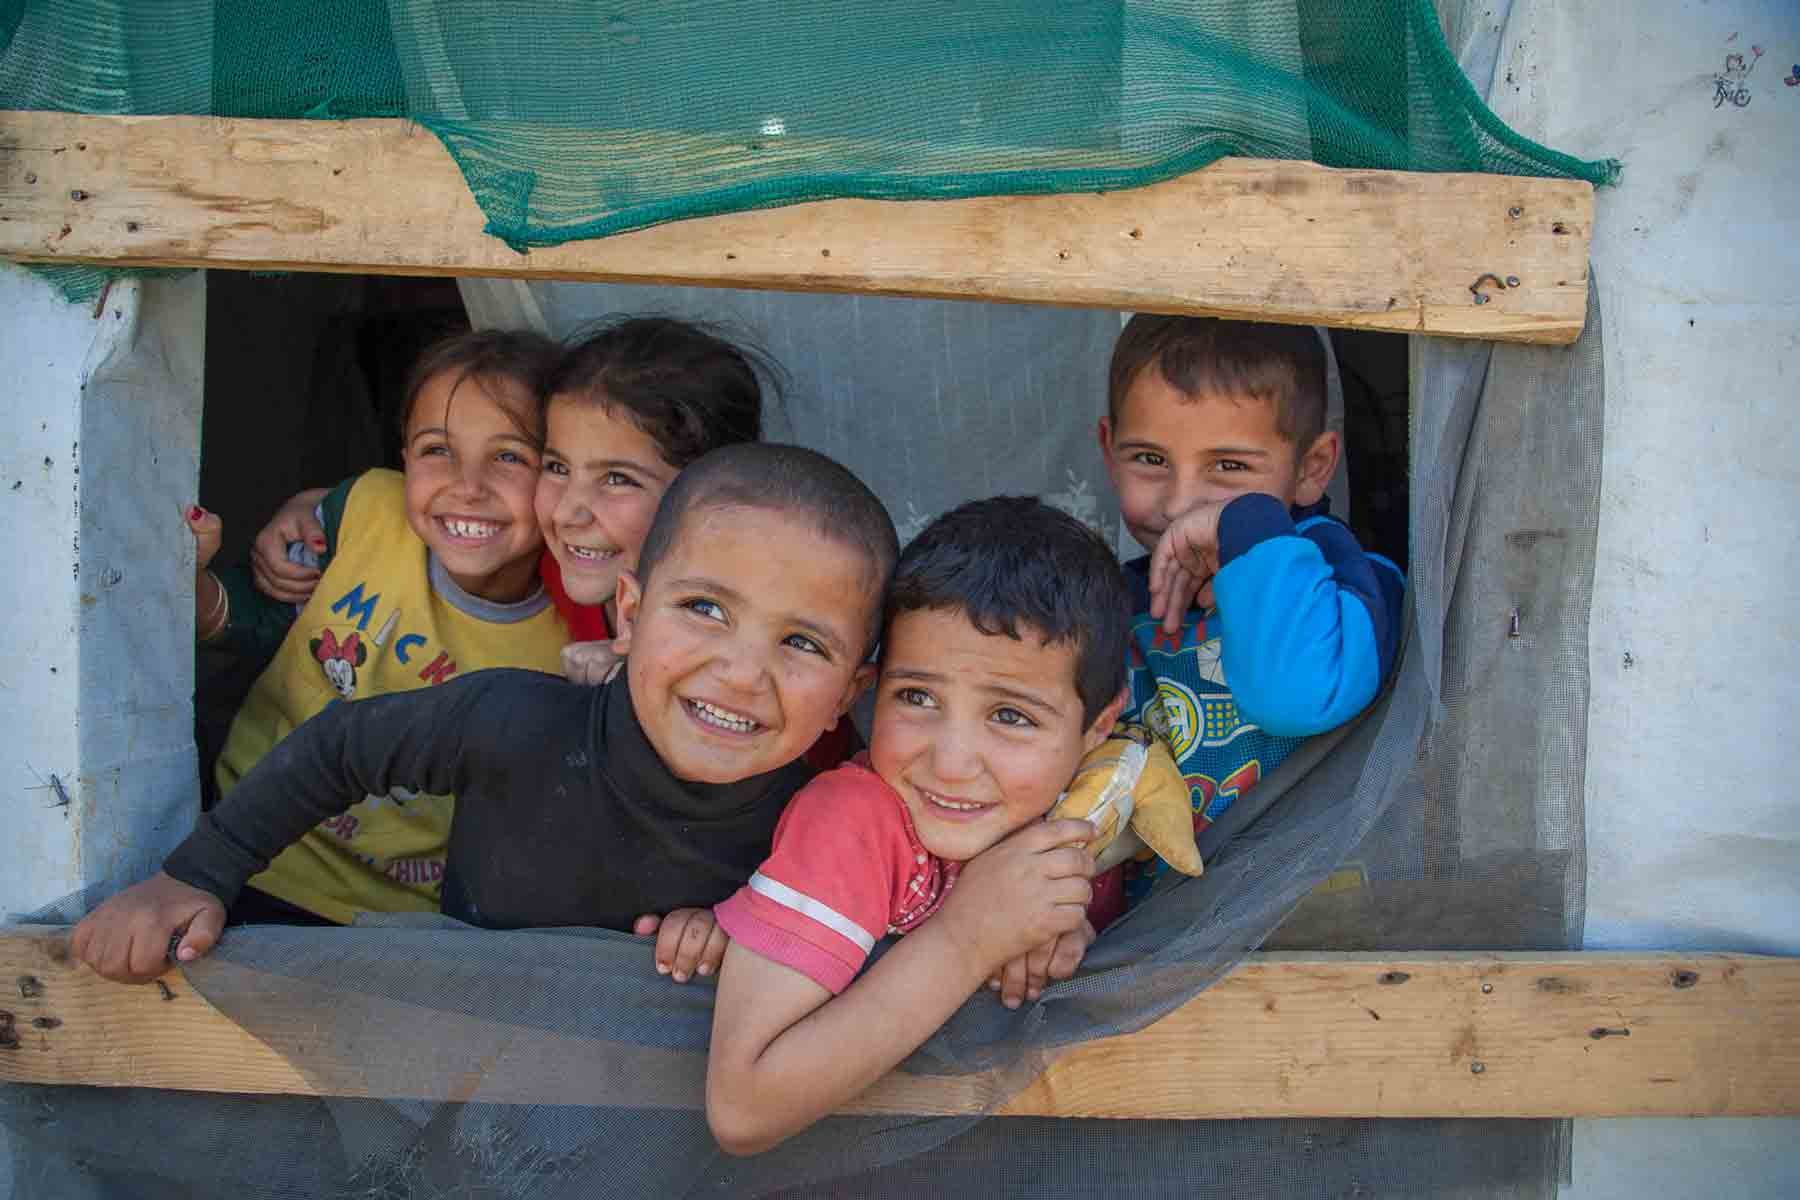 SYRIA   APR. 06, 2020   — Children Targeted by Extremist Ideology